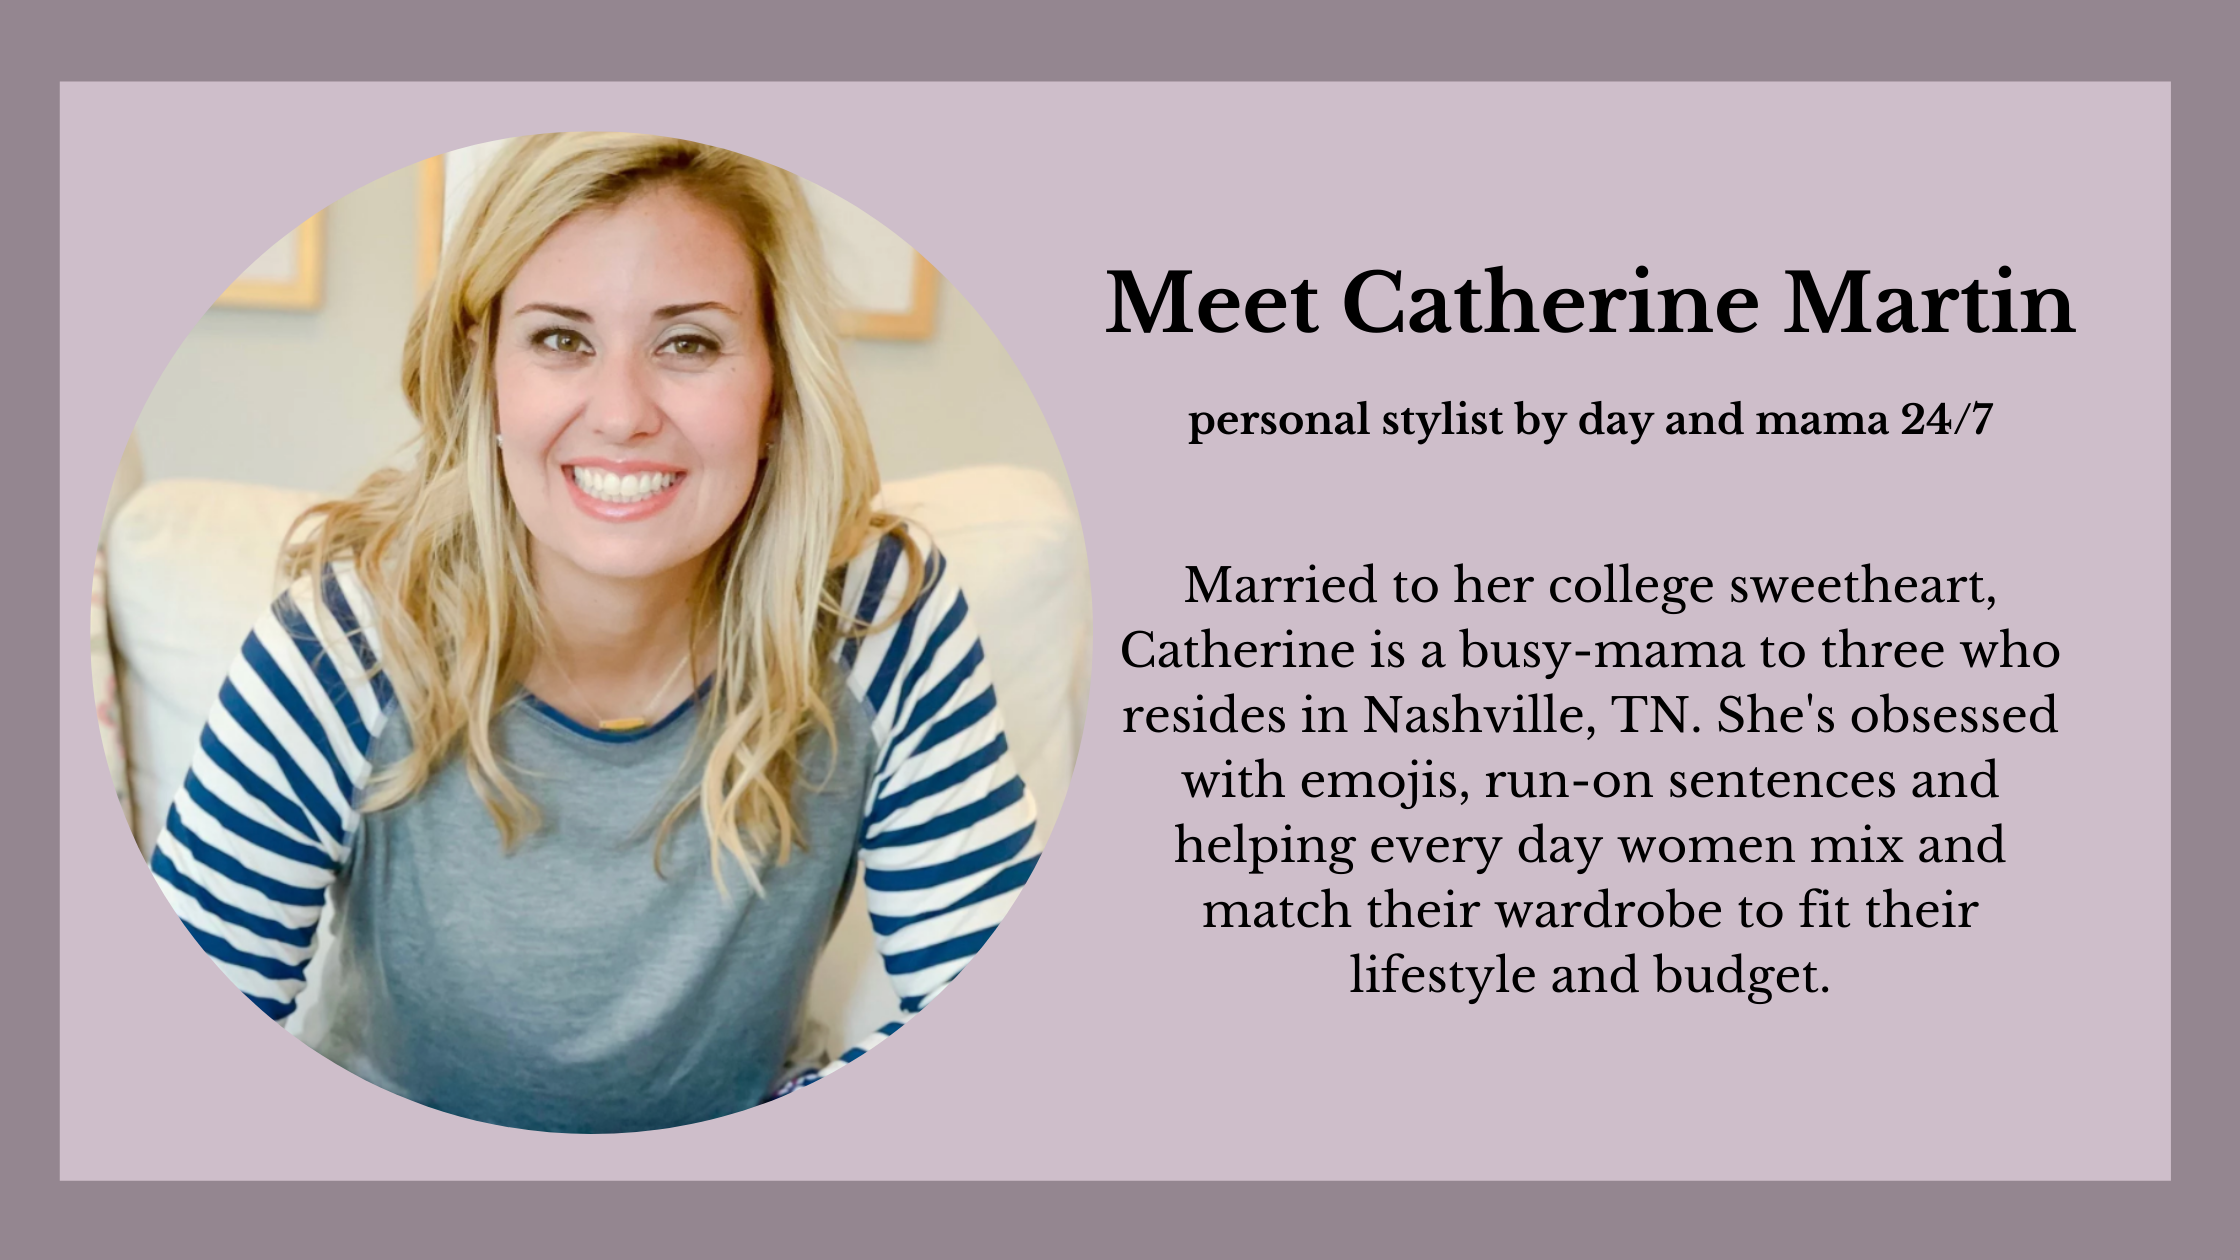 Meet Catherine Martin, Tennessee based personal stylist for women of all ages and budgets